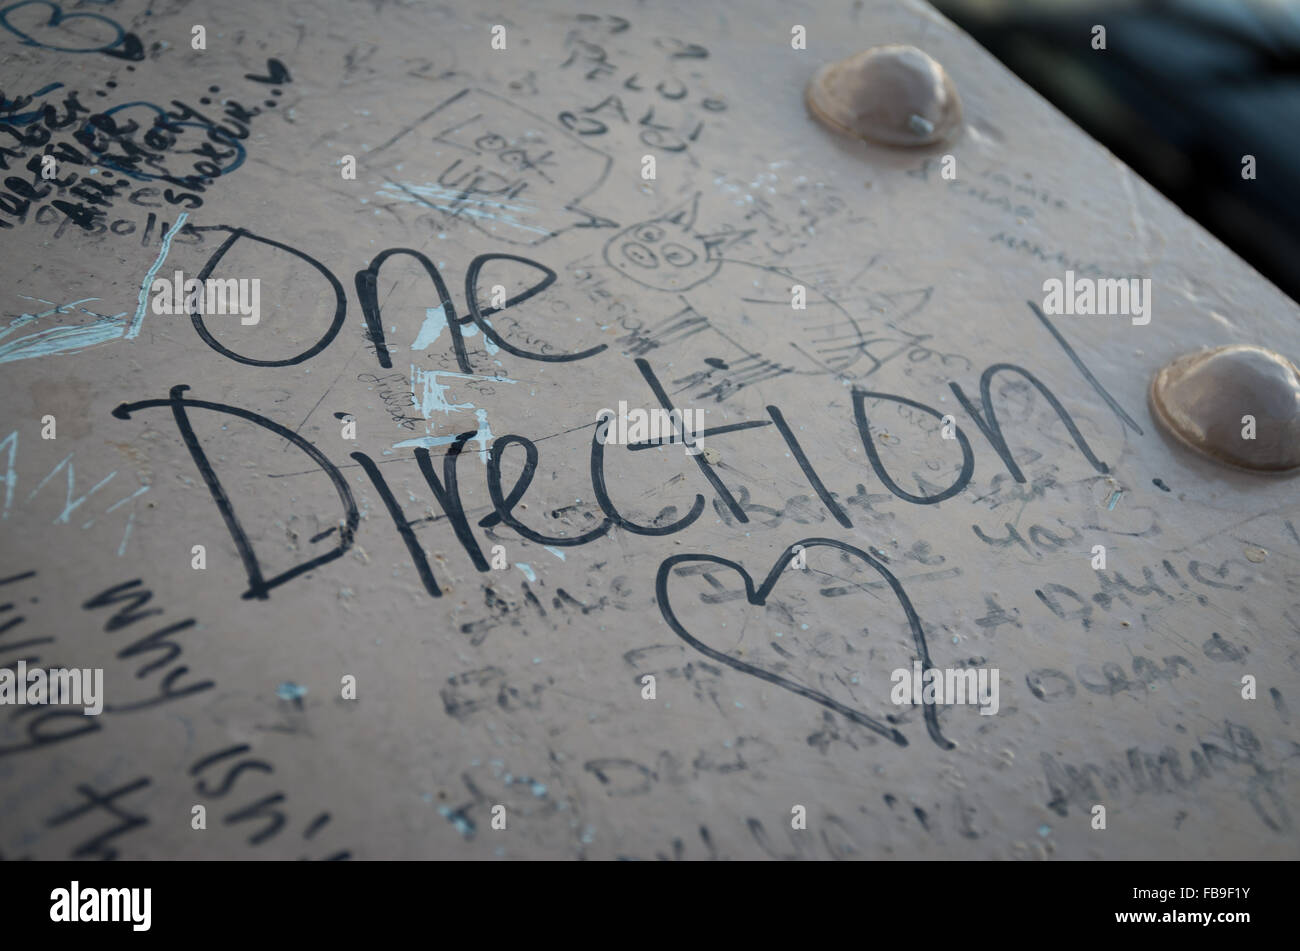 One Direction fan graffiti and heart drawn in black marker pen on a metal beam - Stock Image